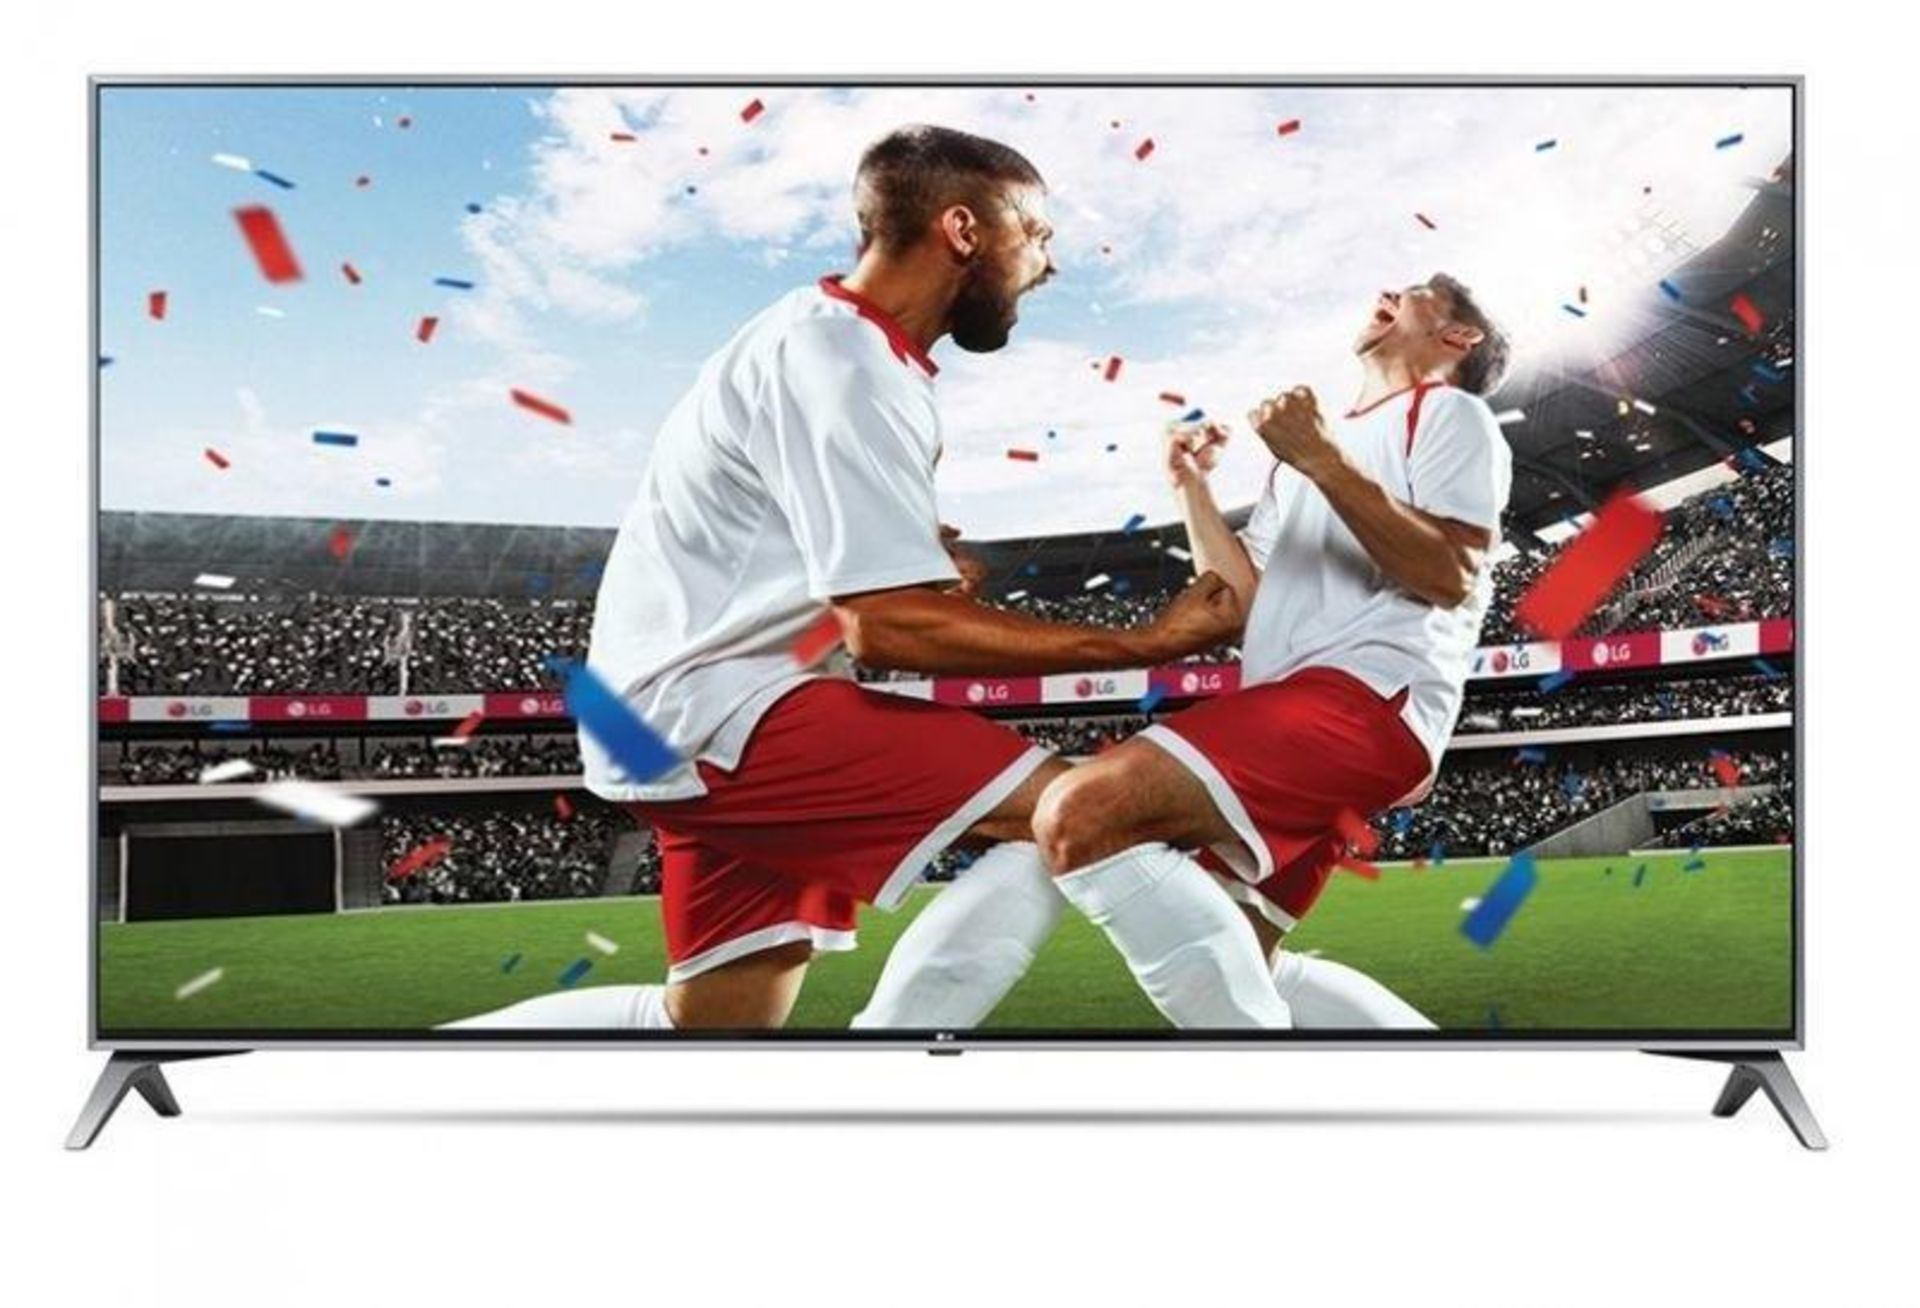 Lotto 30001 - V Grade A LG 49 Inch ACTIVE HDR 4K SUPER ULTRA HD NANO LED SMART TV WITH FREEVIEW HD & WEBOS 3.5 &